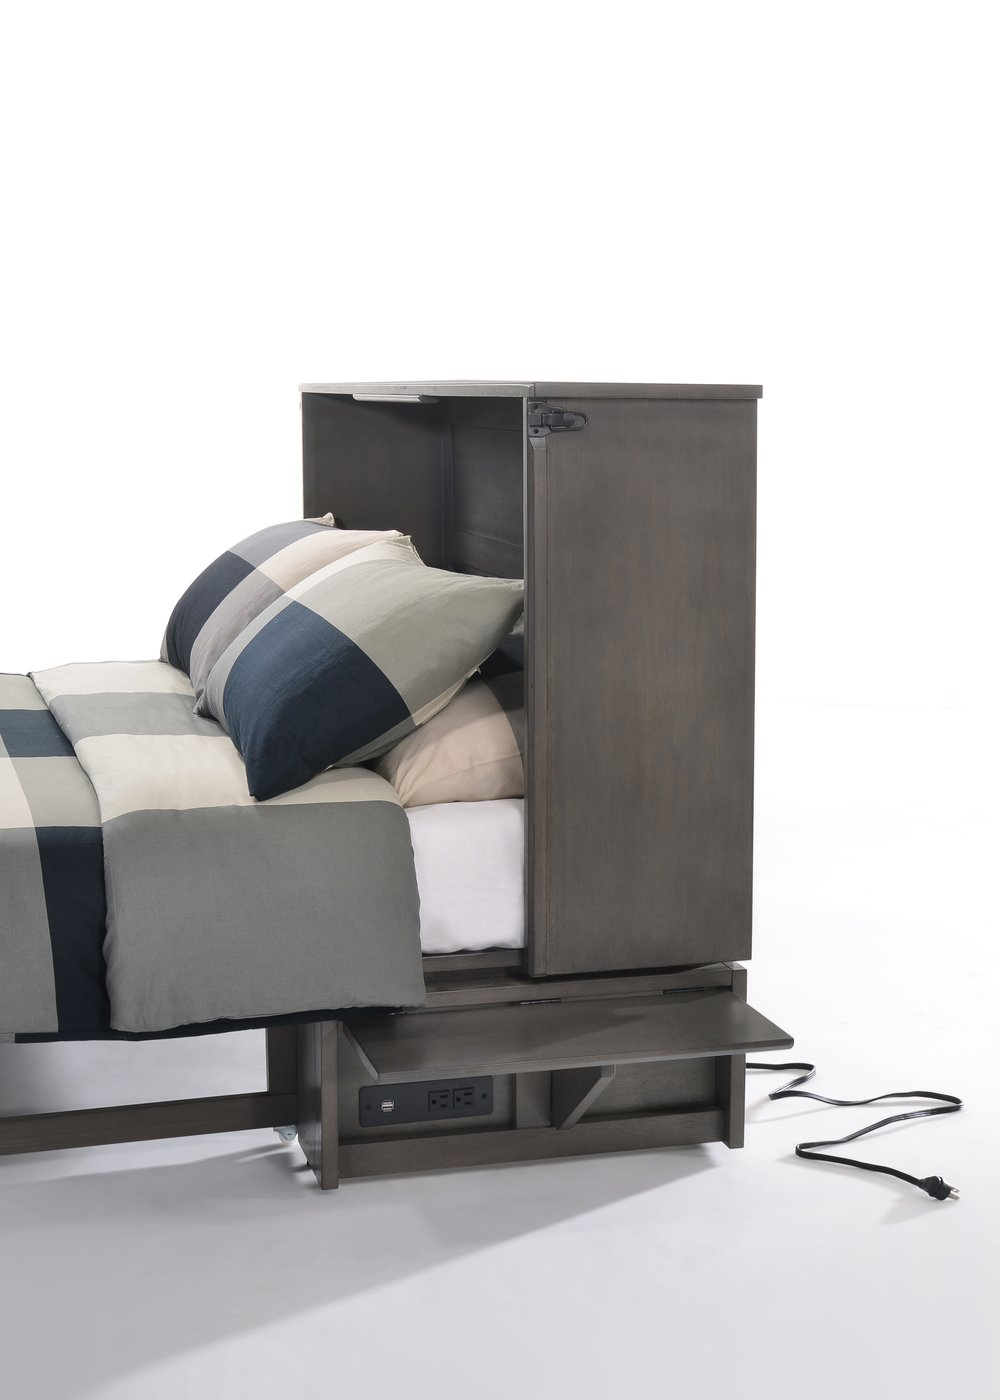 Power, USB Ports, and Night Stand -